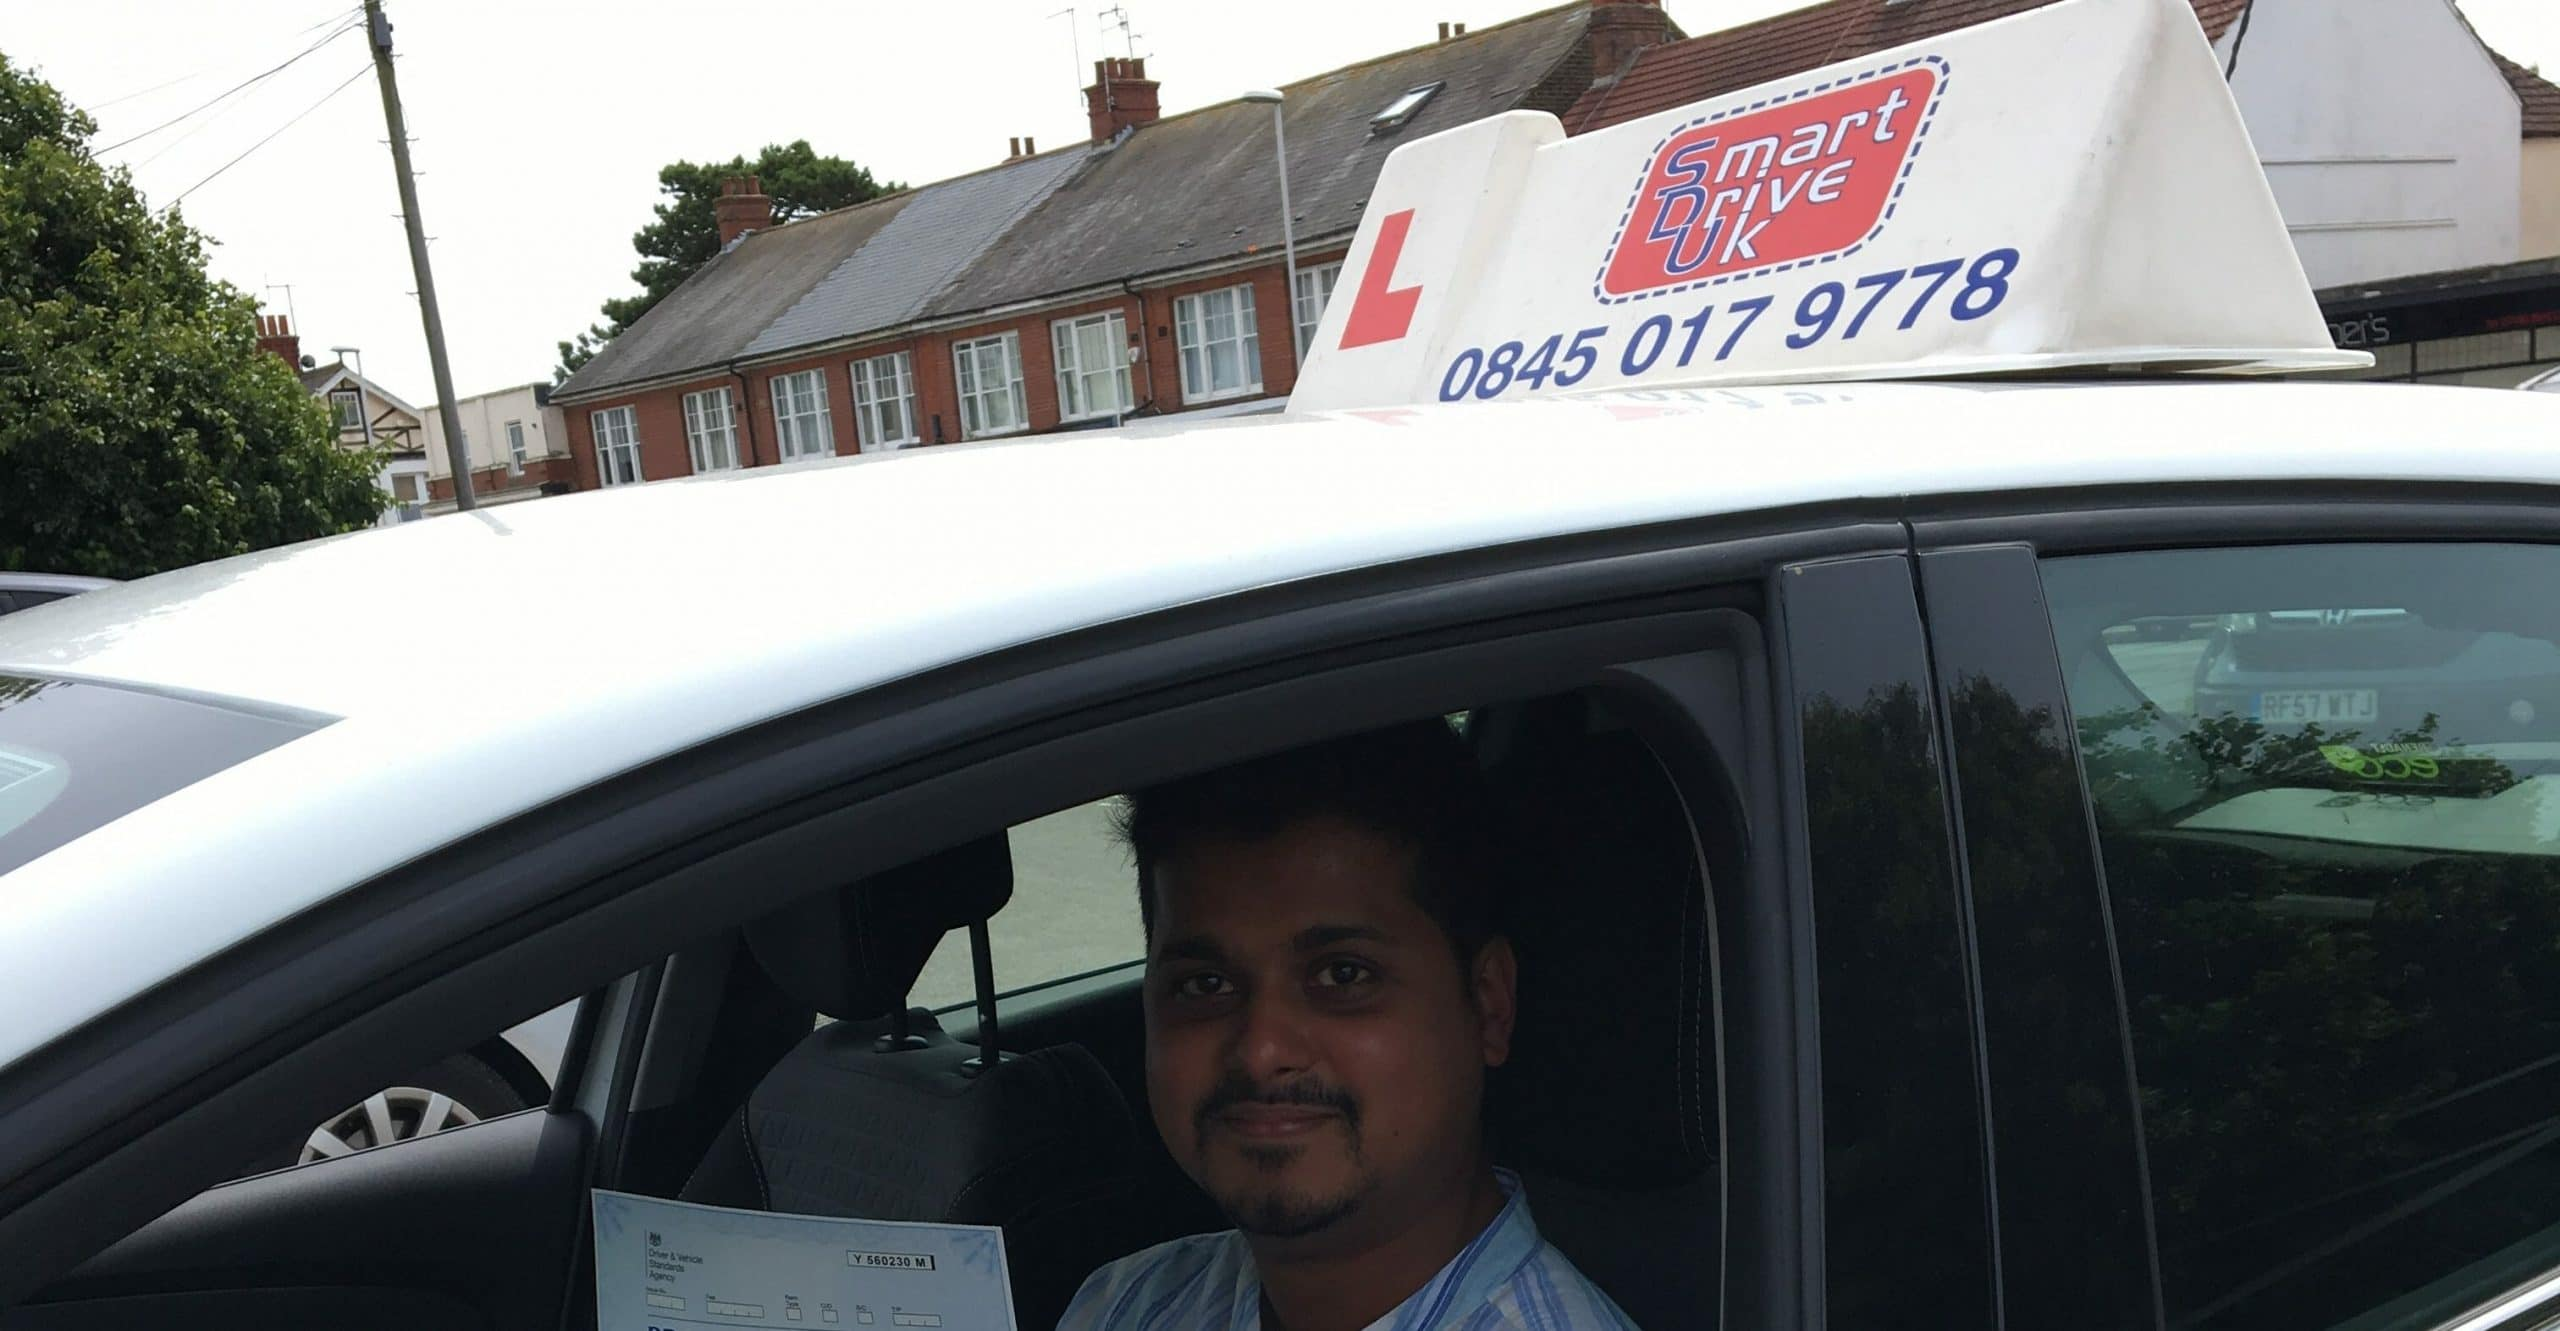 Well done to Arif of Worthing